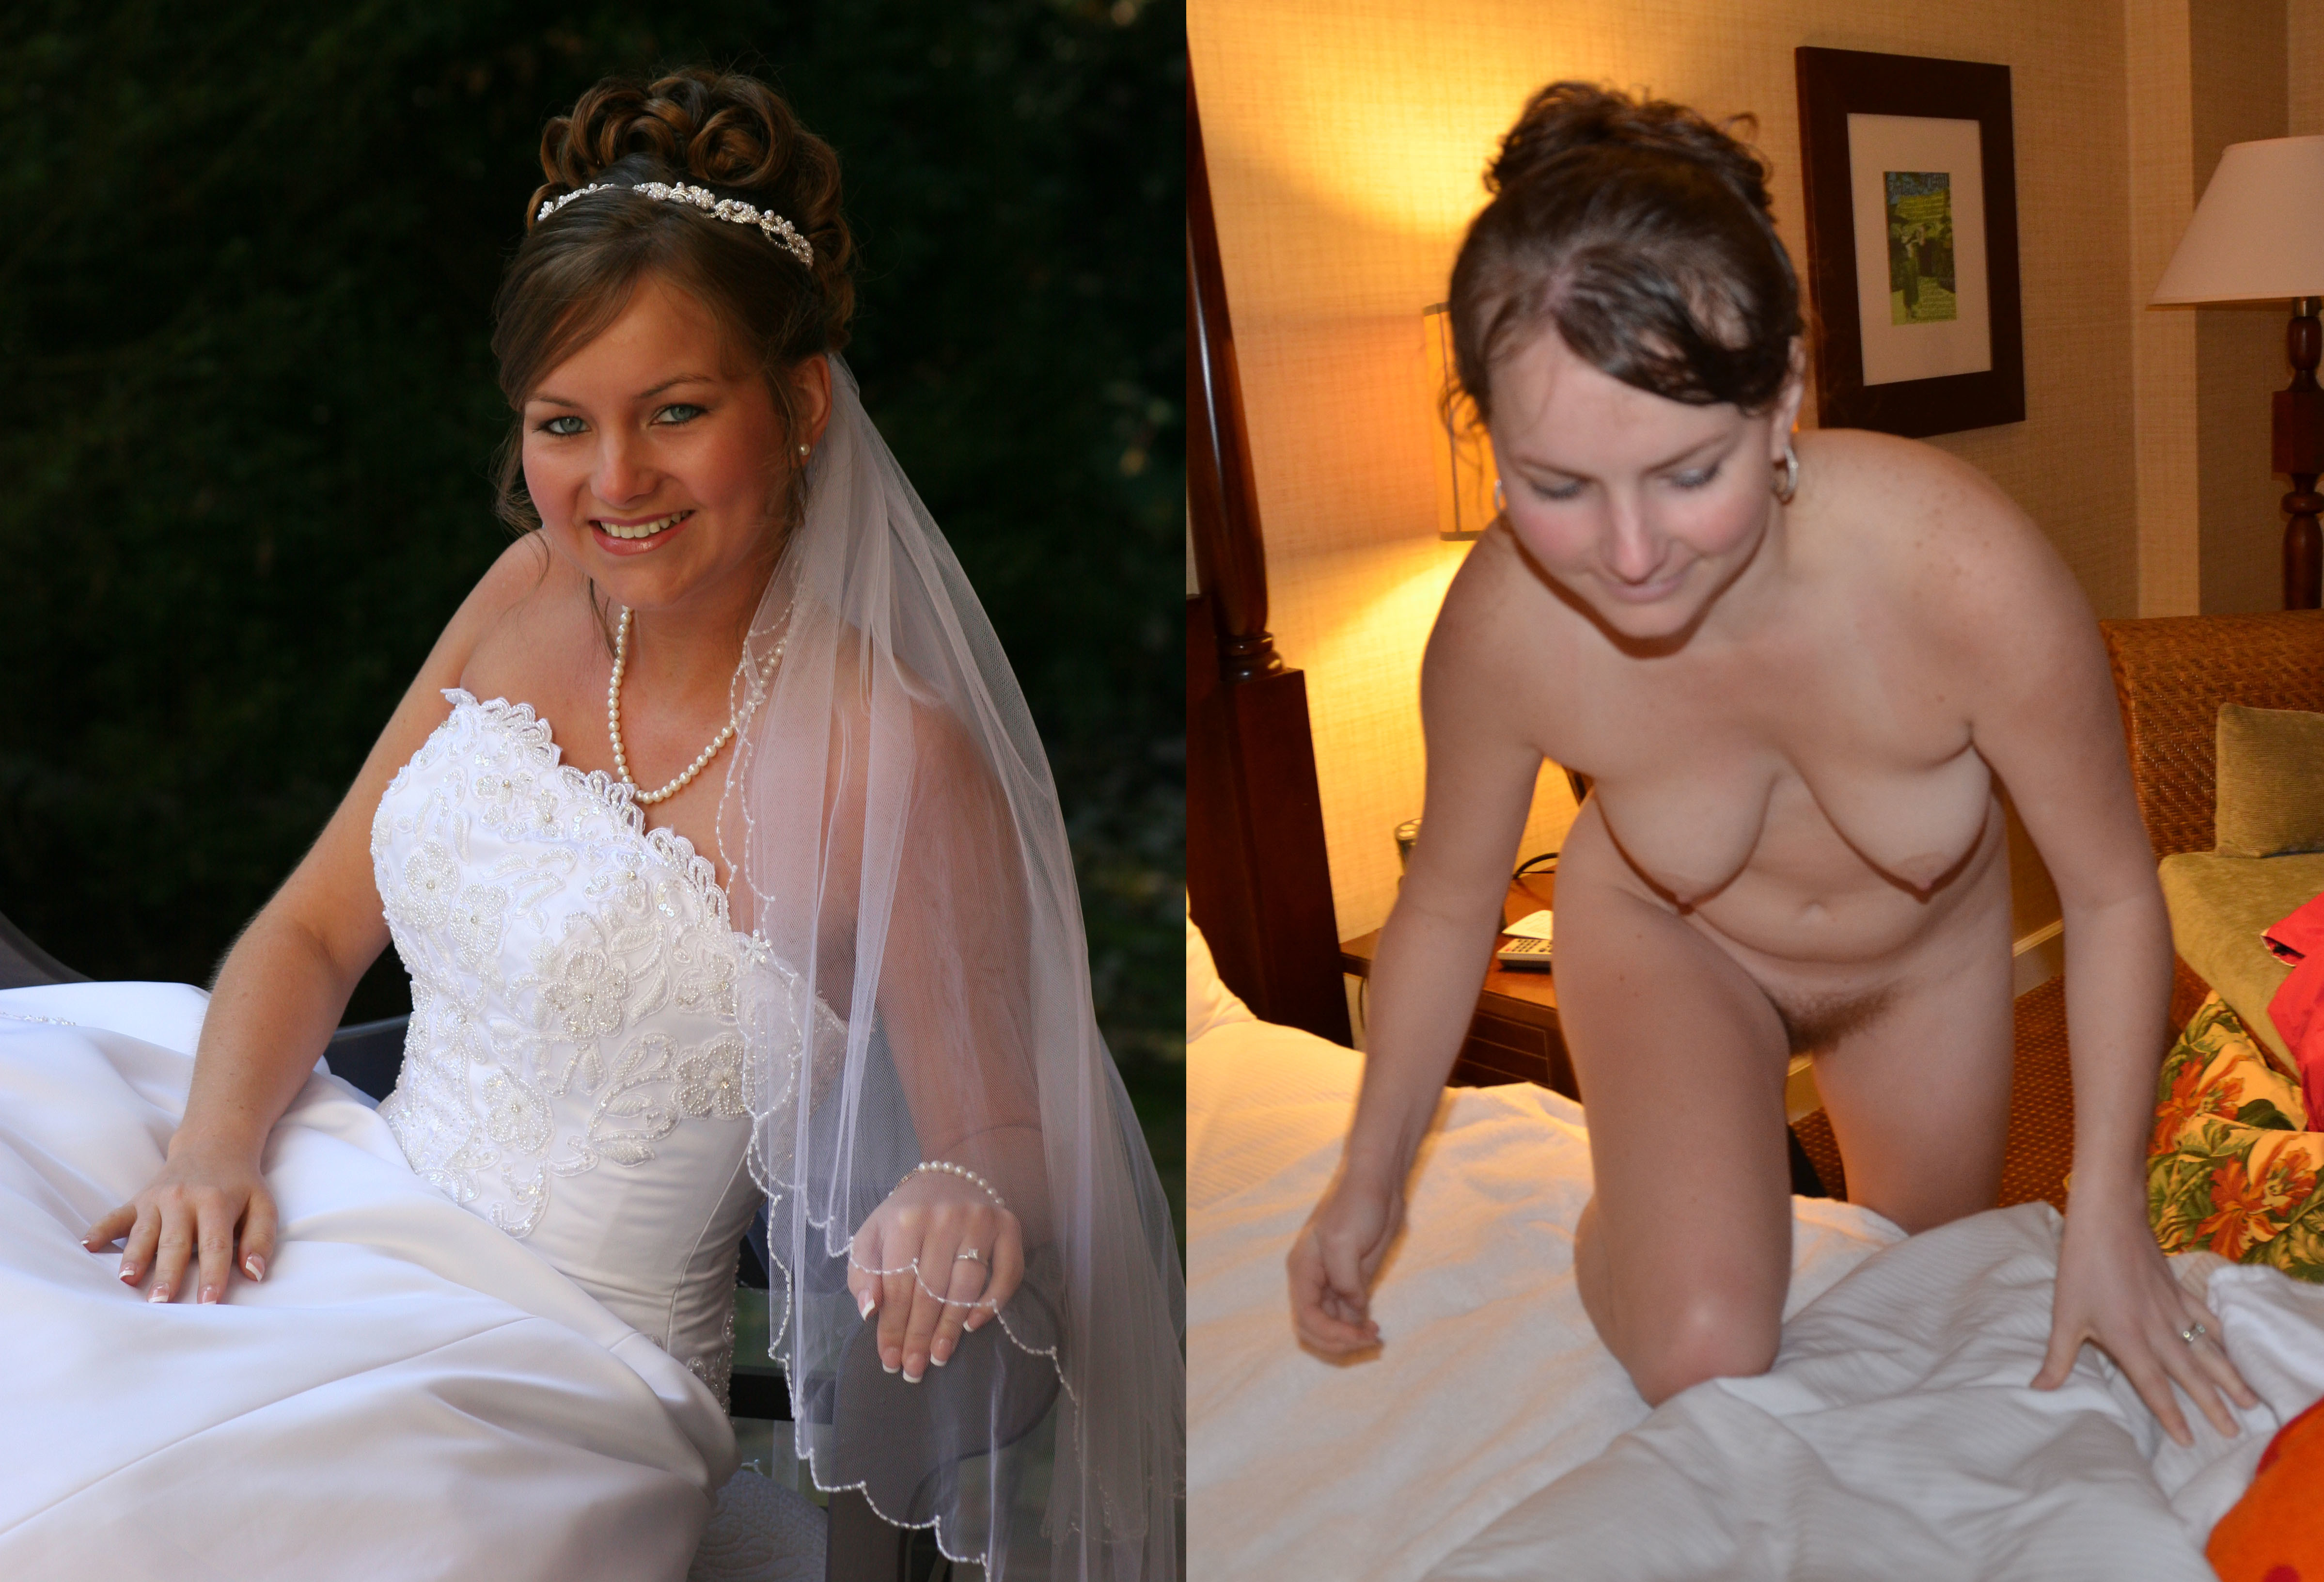 wide-bootys-amature-honeymoon-bride-naked-videovideos-obeses-hard-cunnilingus